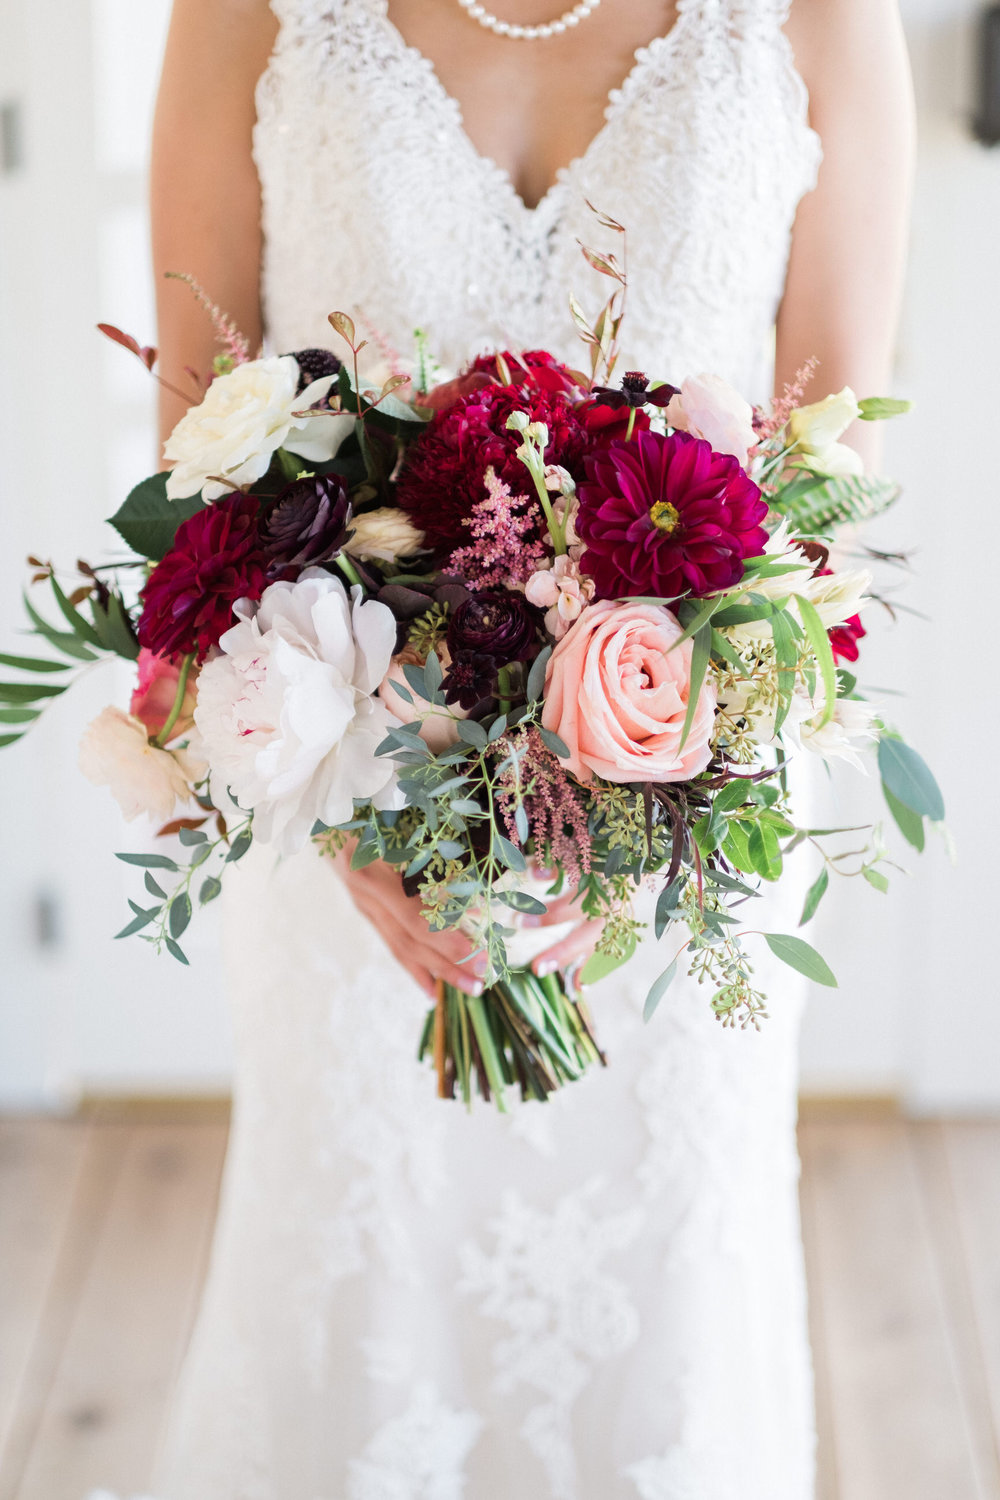 bridal bouquet by kate kuepers of bloom designs in brainerd, mn